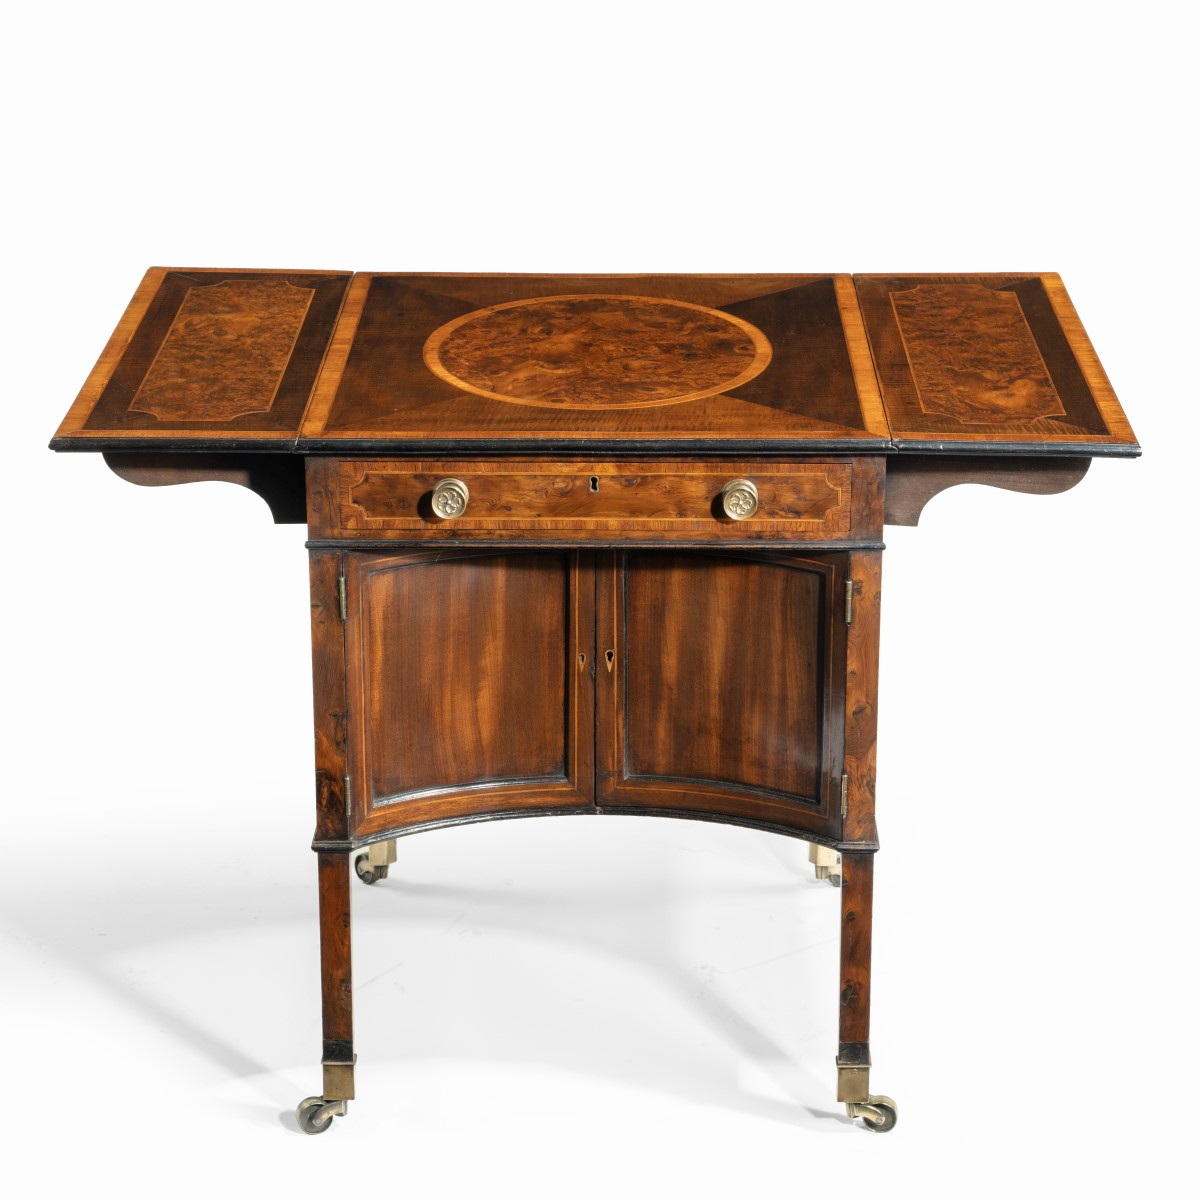 A George III Chippendale-style satinwood Pembroke table,